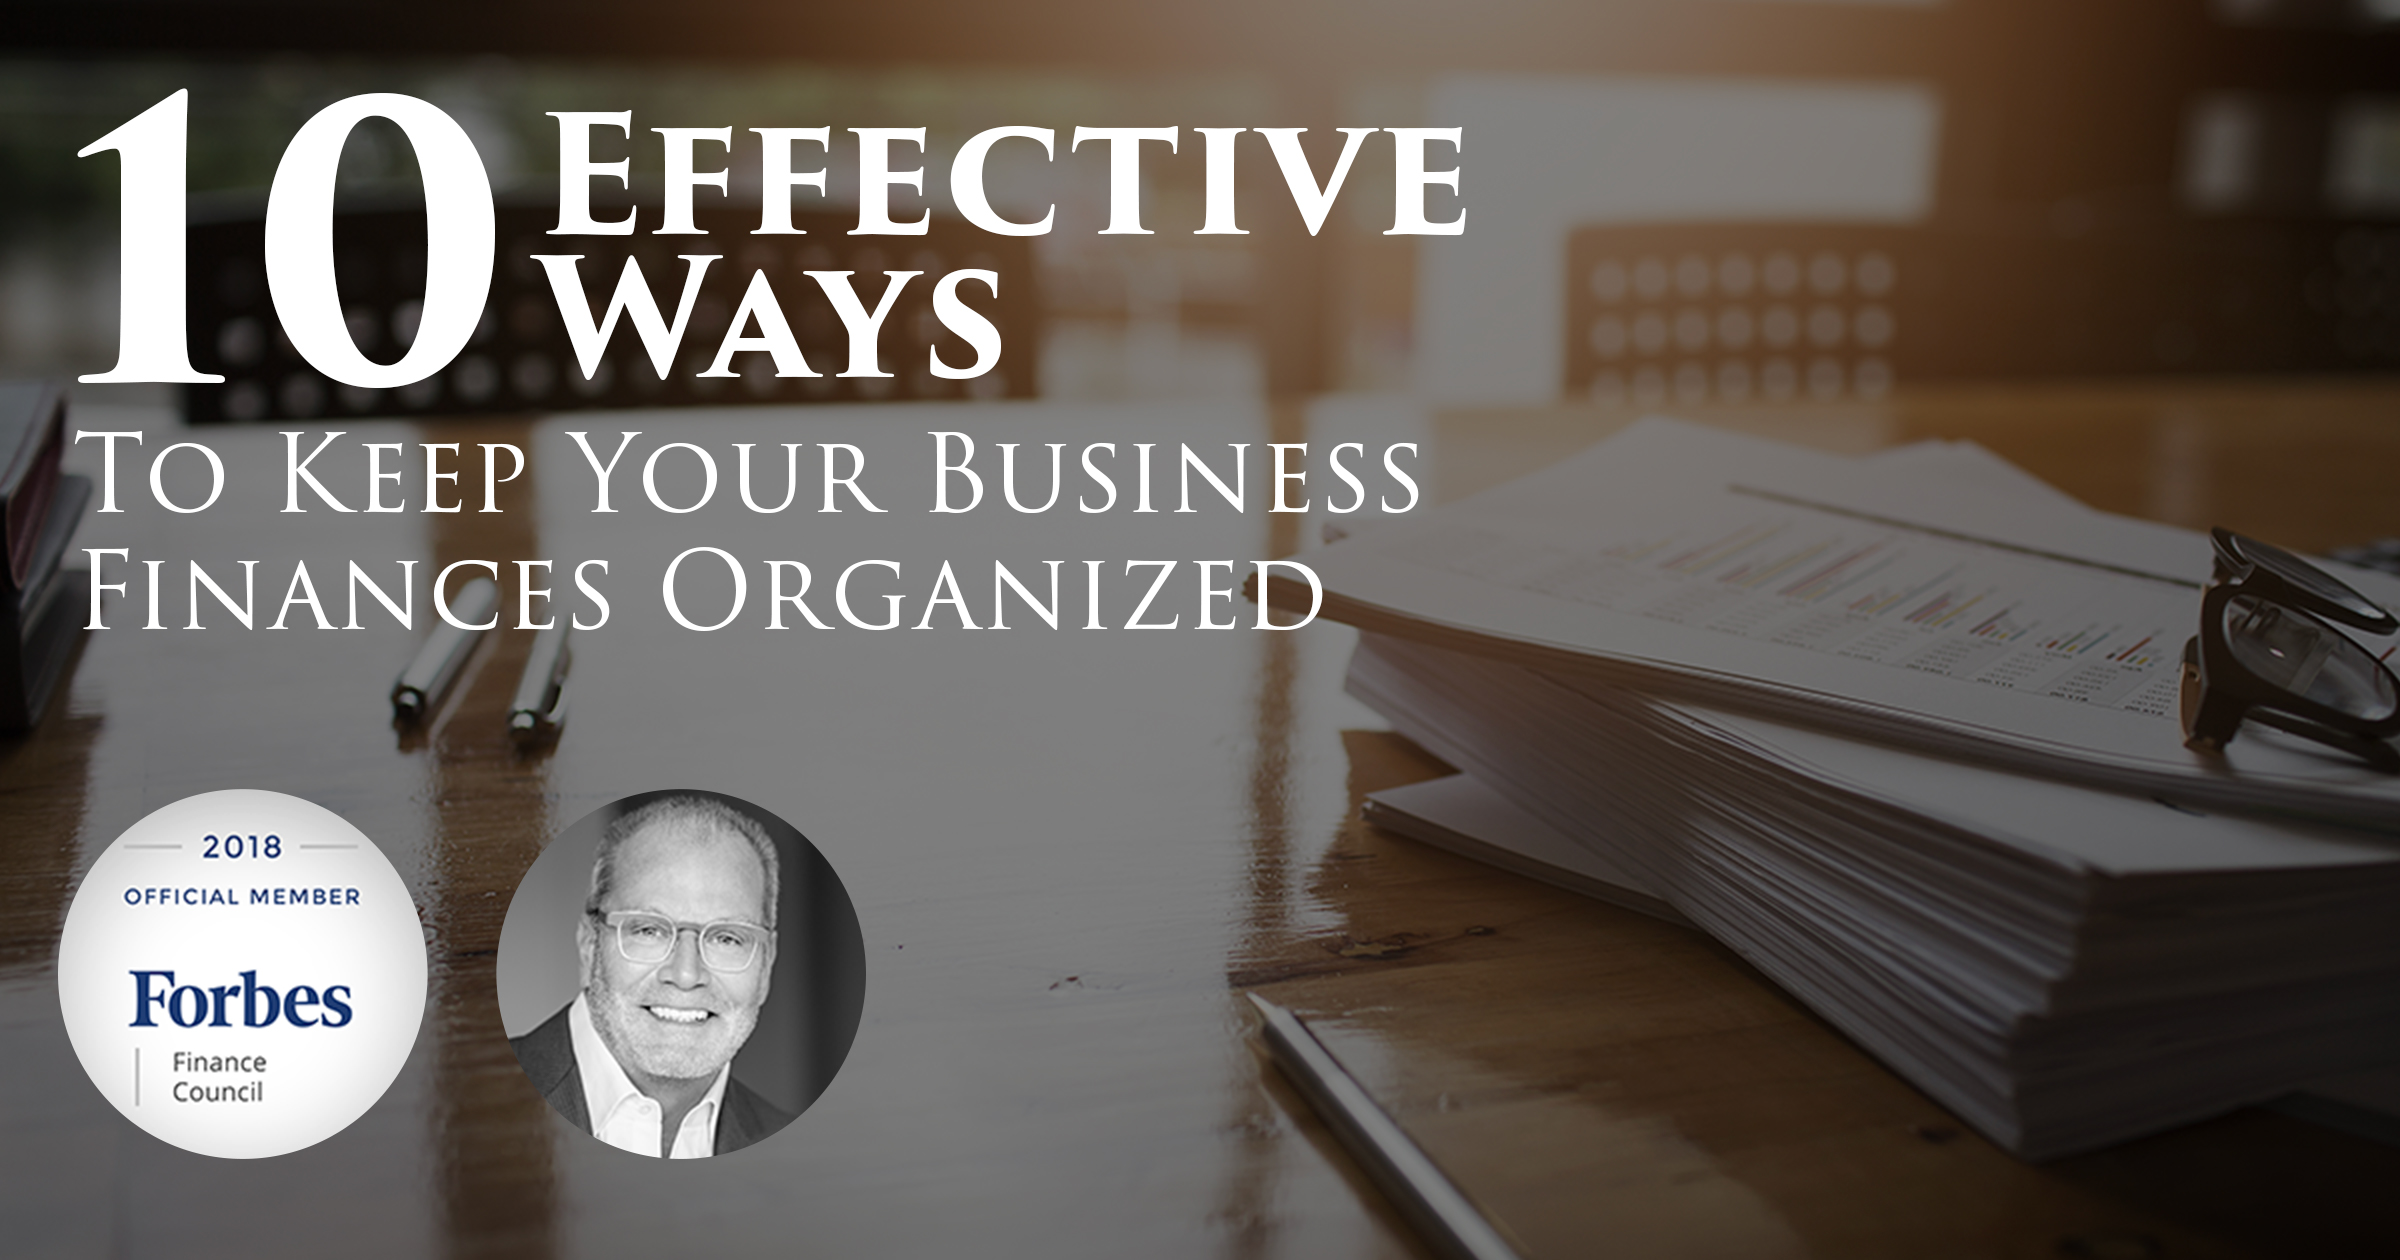 10 Effective Ways to Keep Your Business Finances Organized